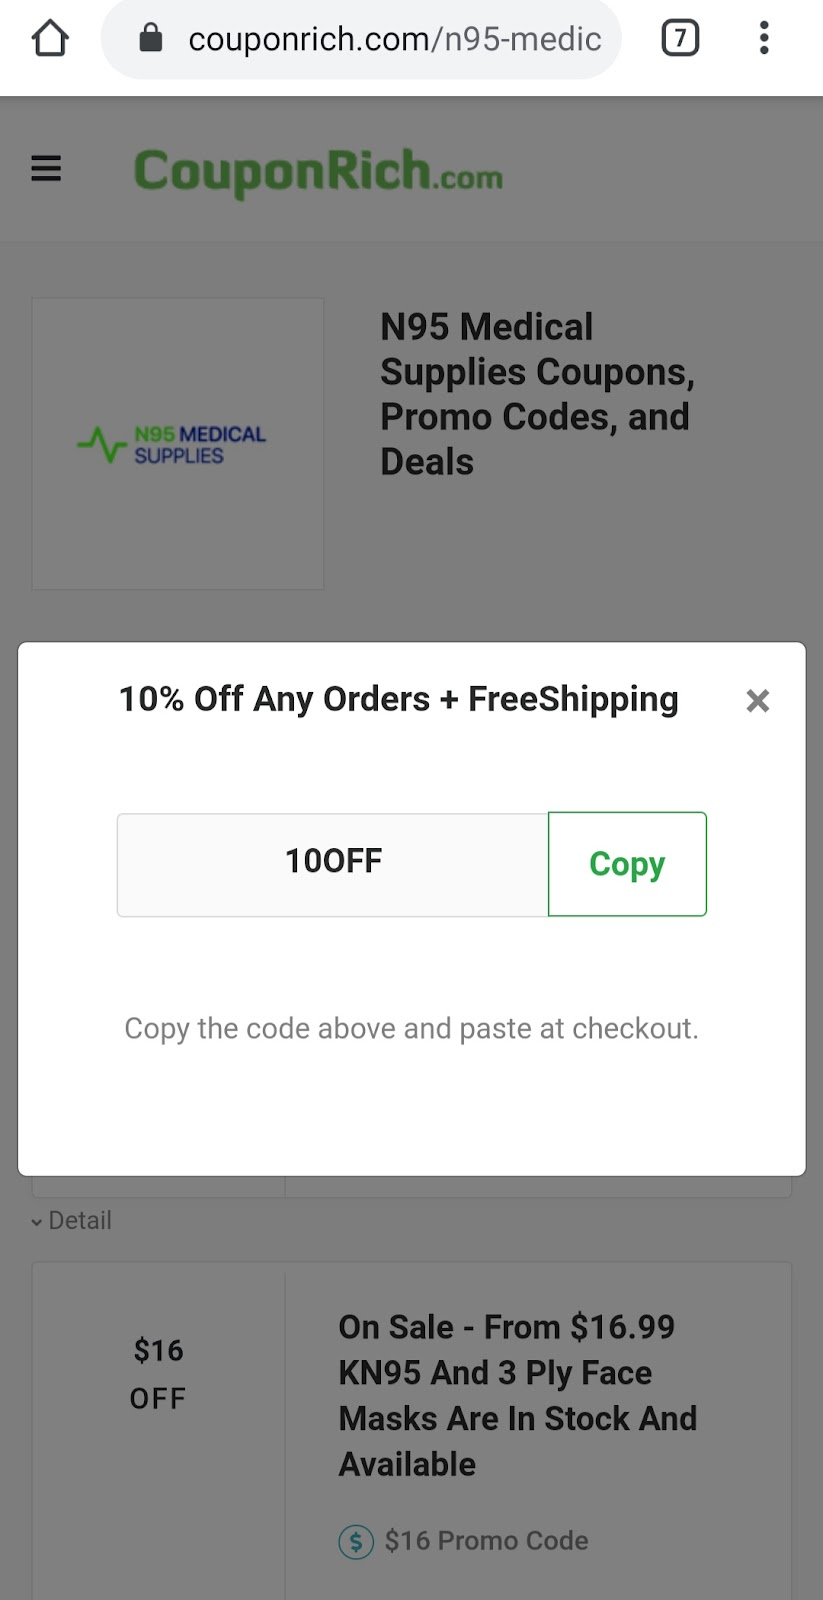 N95 Medical Supplies coupon code